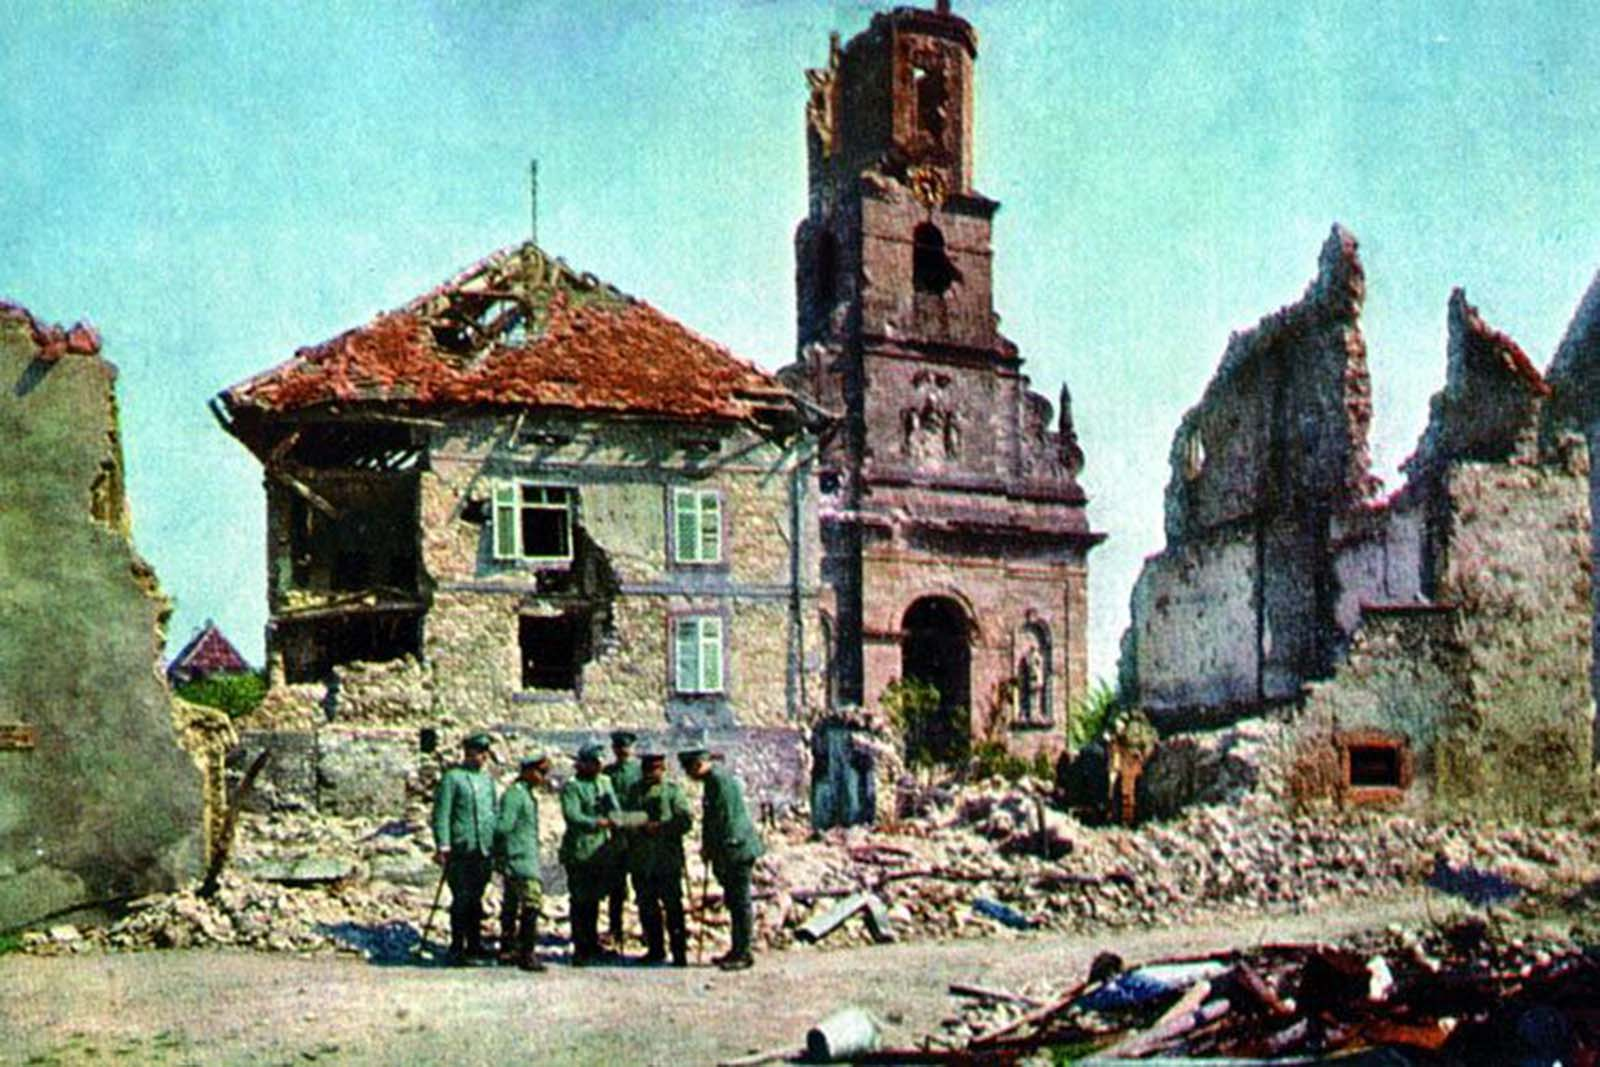 During World War I, images of destroyed churches were a persistent motif.